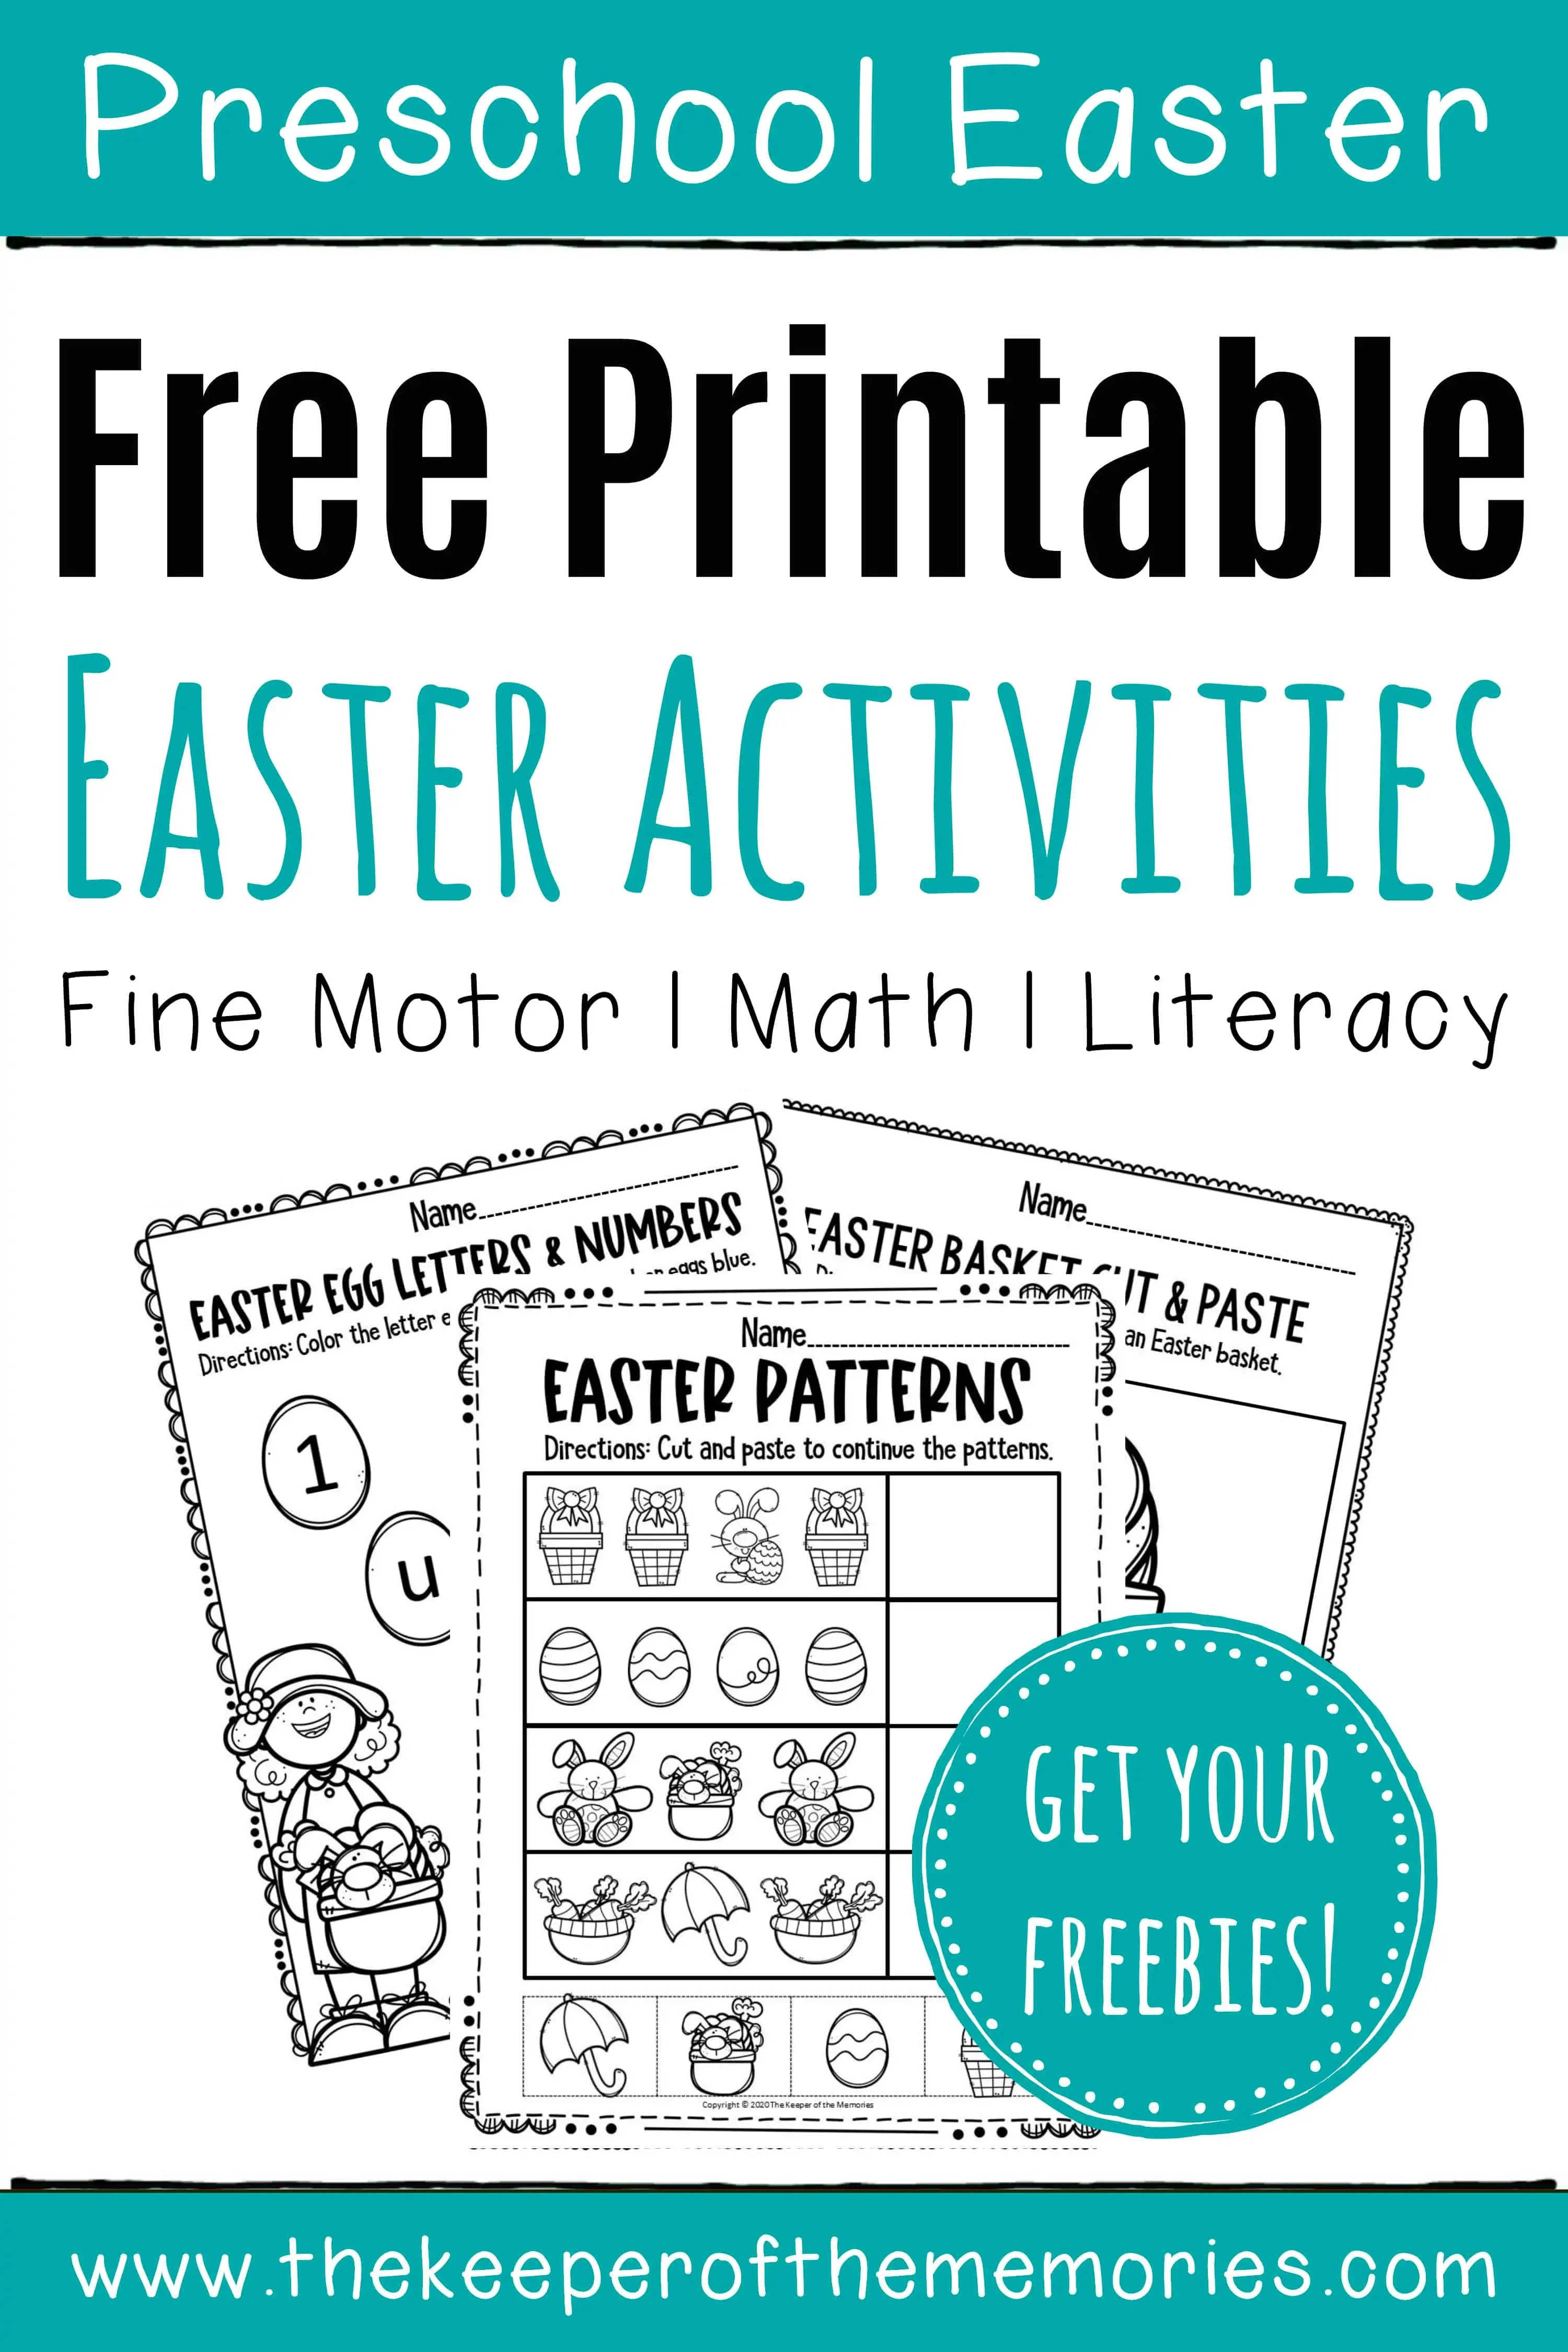 10 Free Easter Printables For Preschoolers